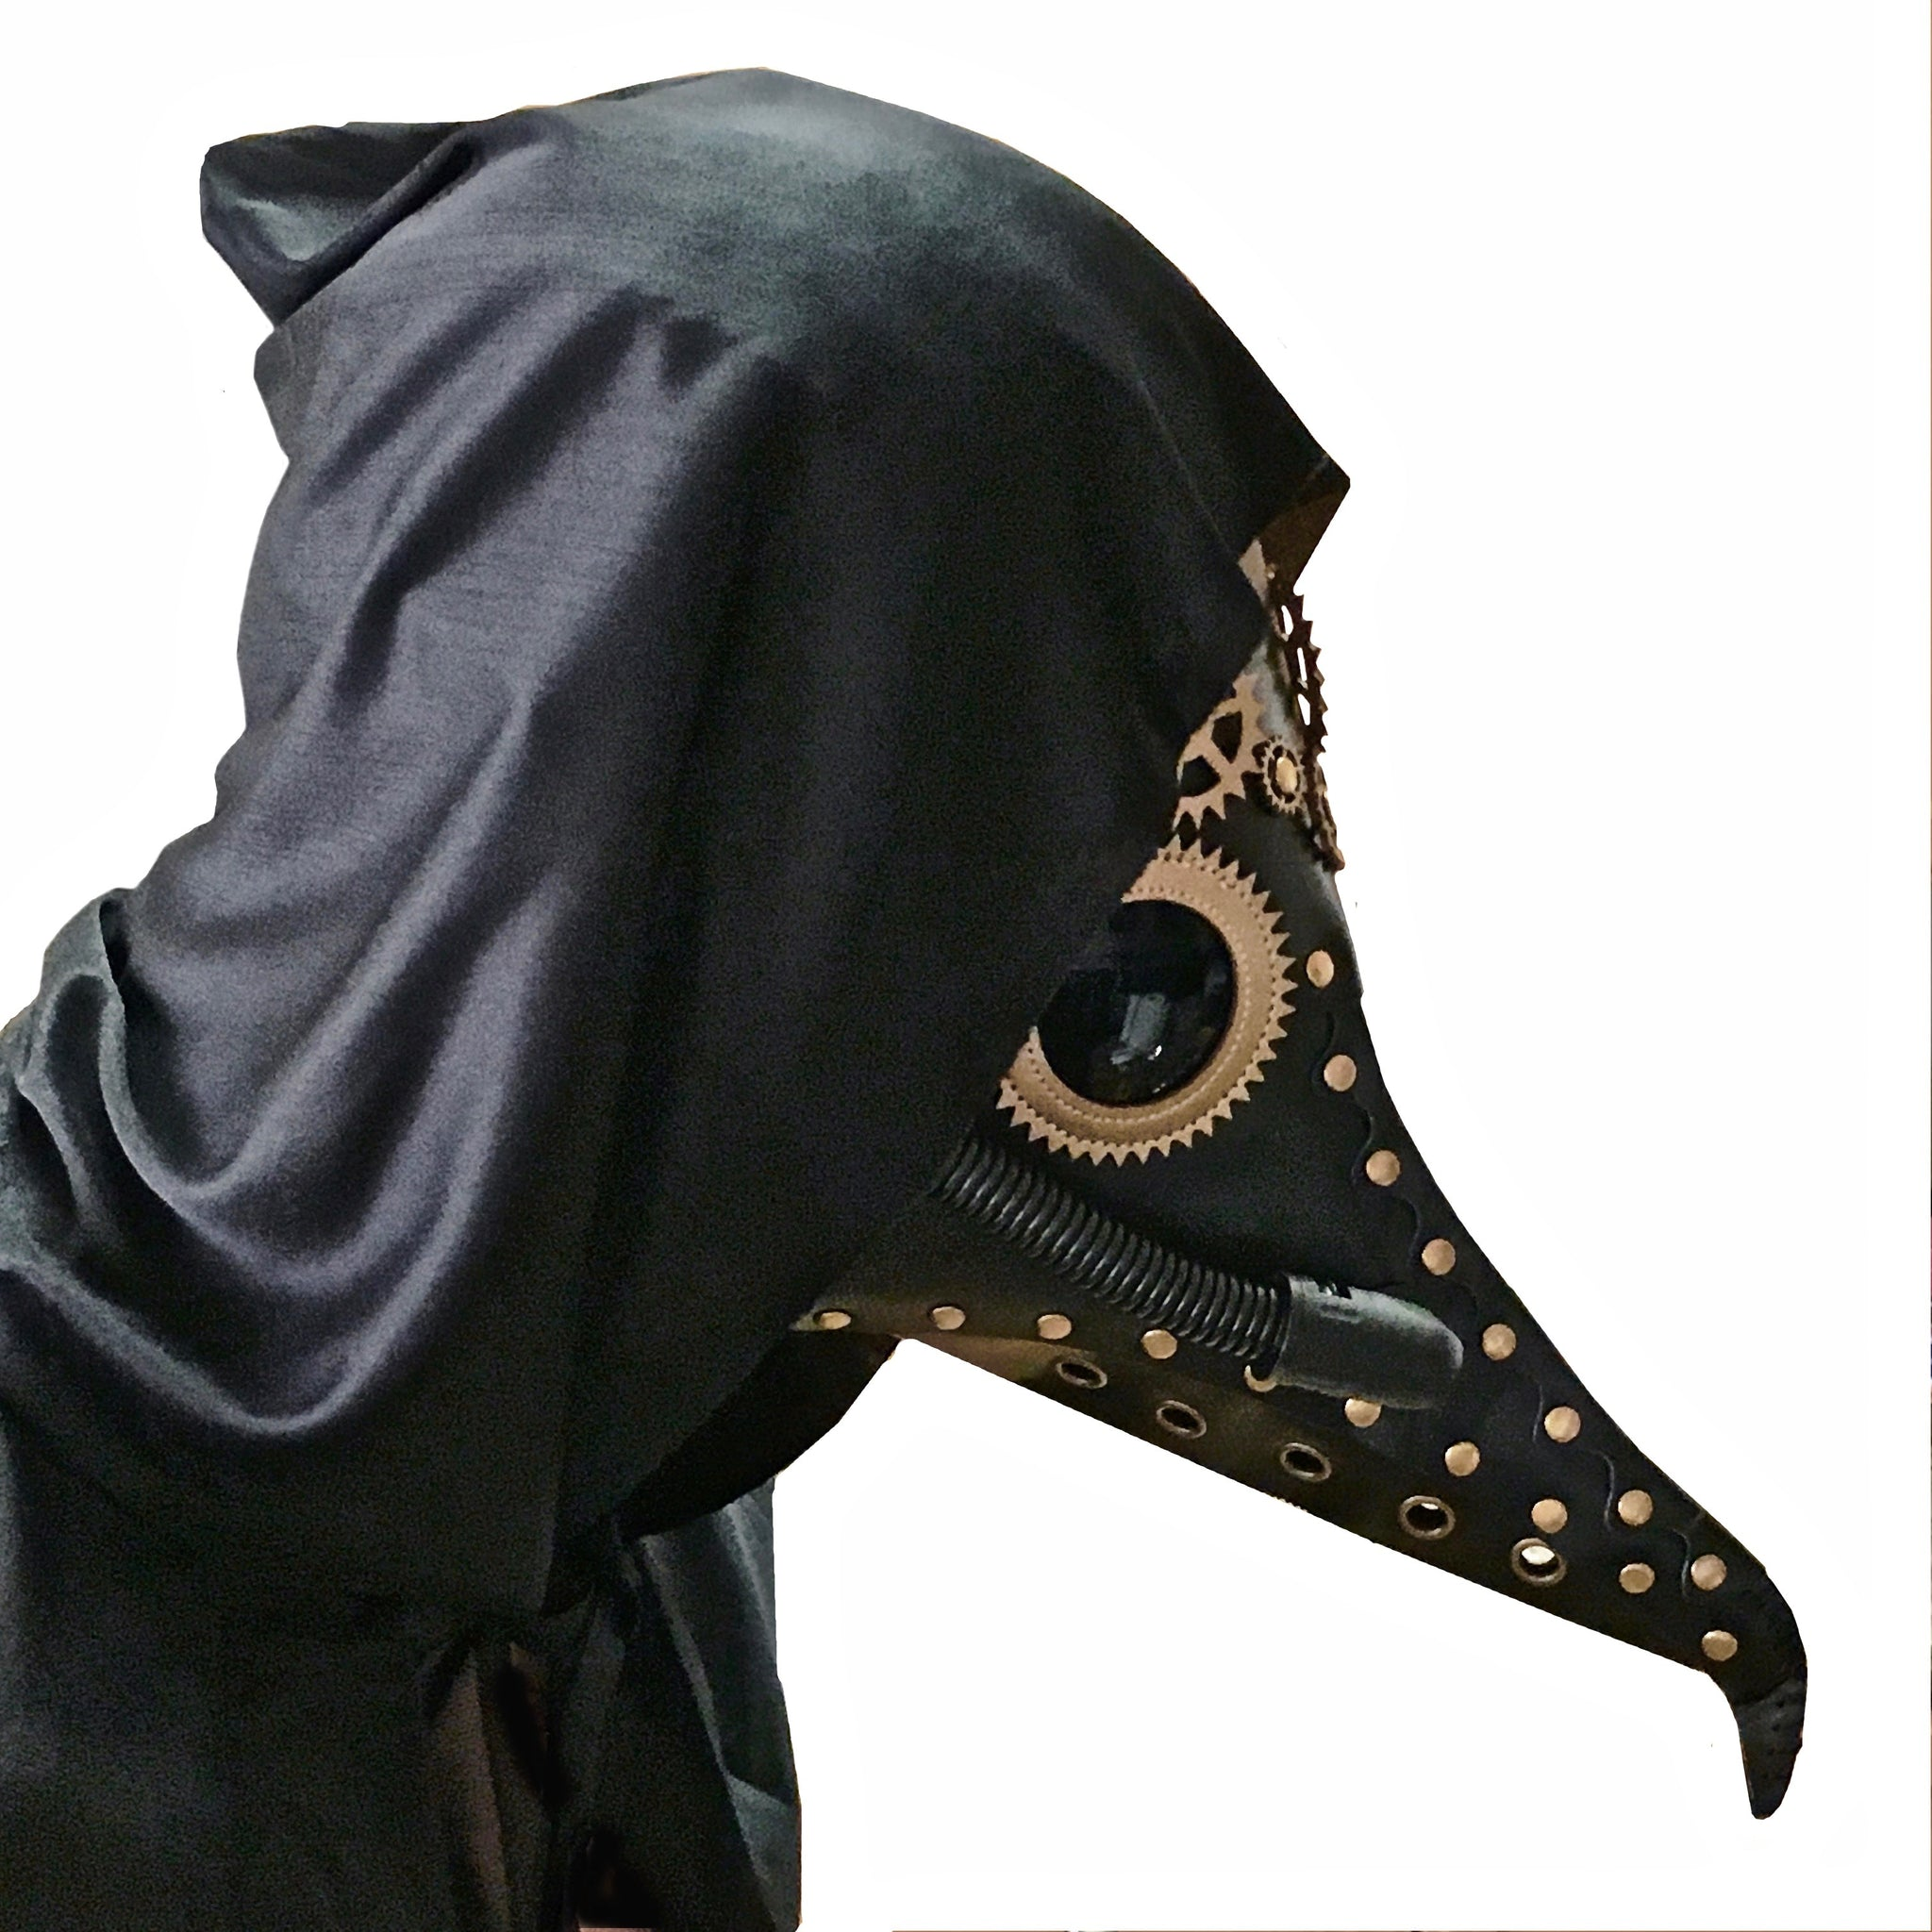 Day Of The Dead - Black Death Plague Doctor - Black/Gold